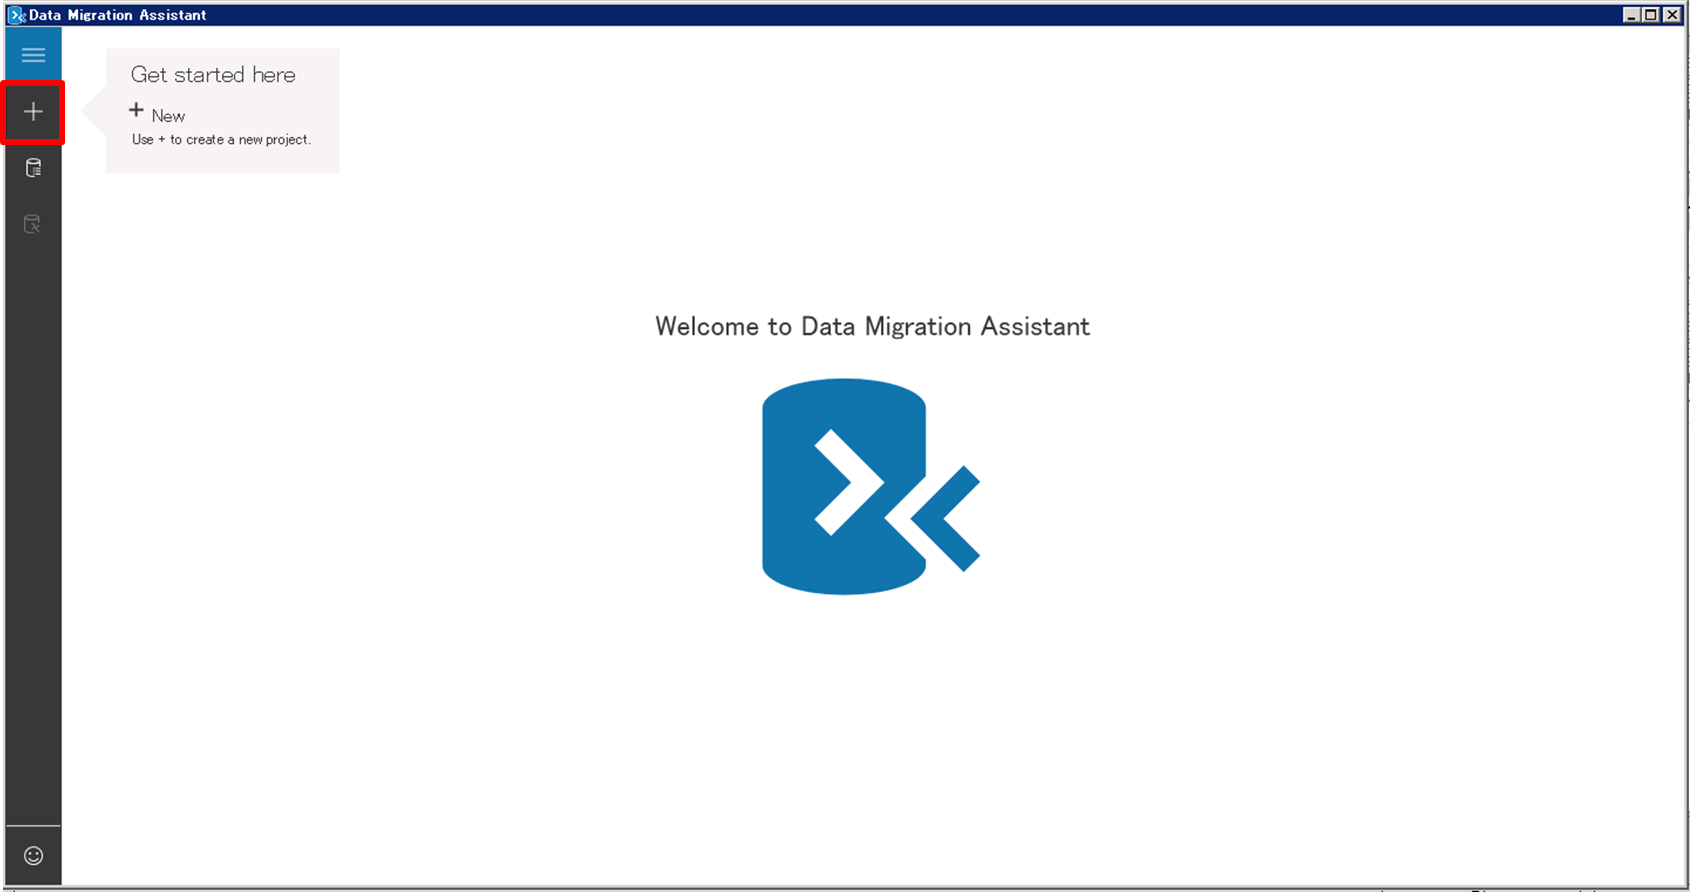 Database Migration Guide で公開されている移行パターン